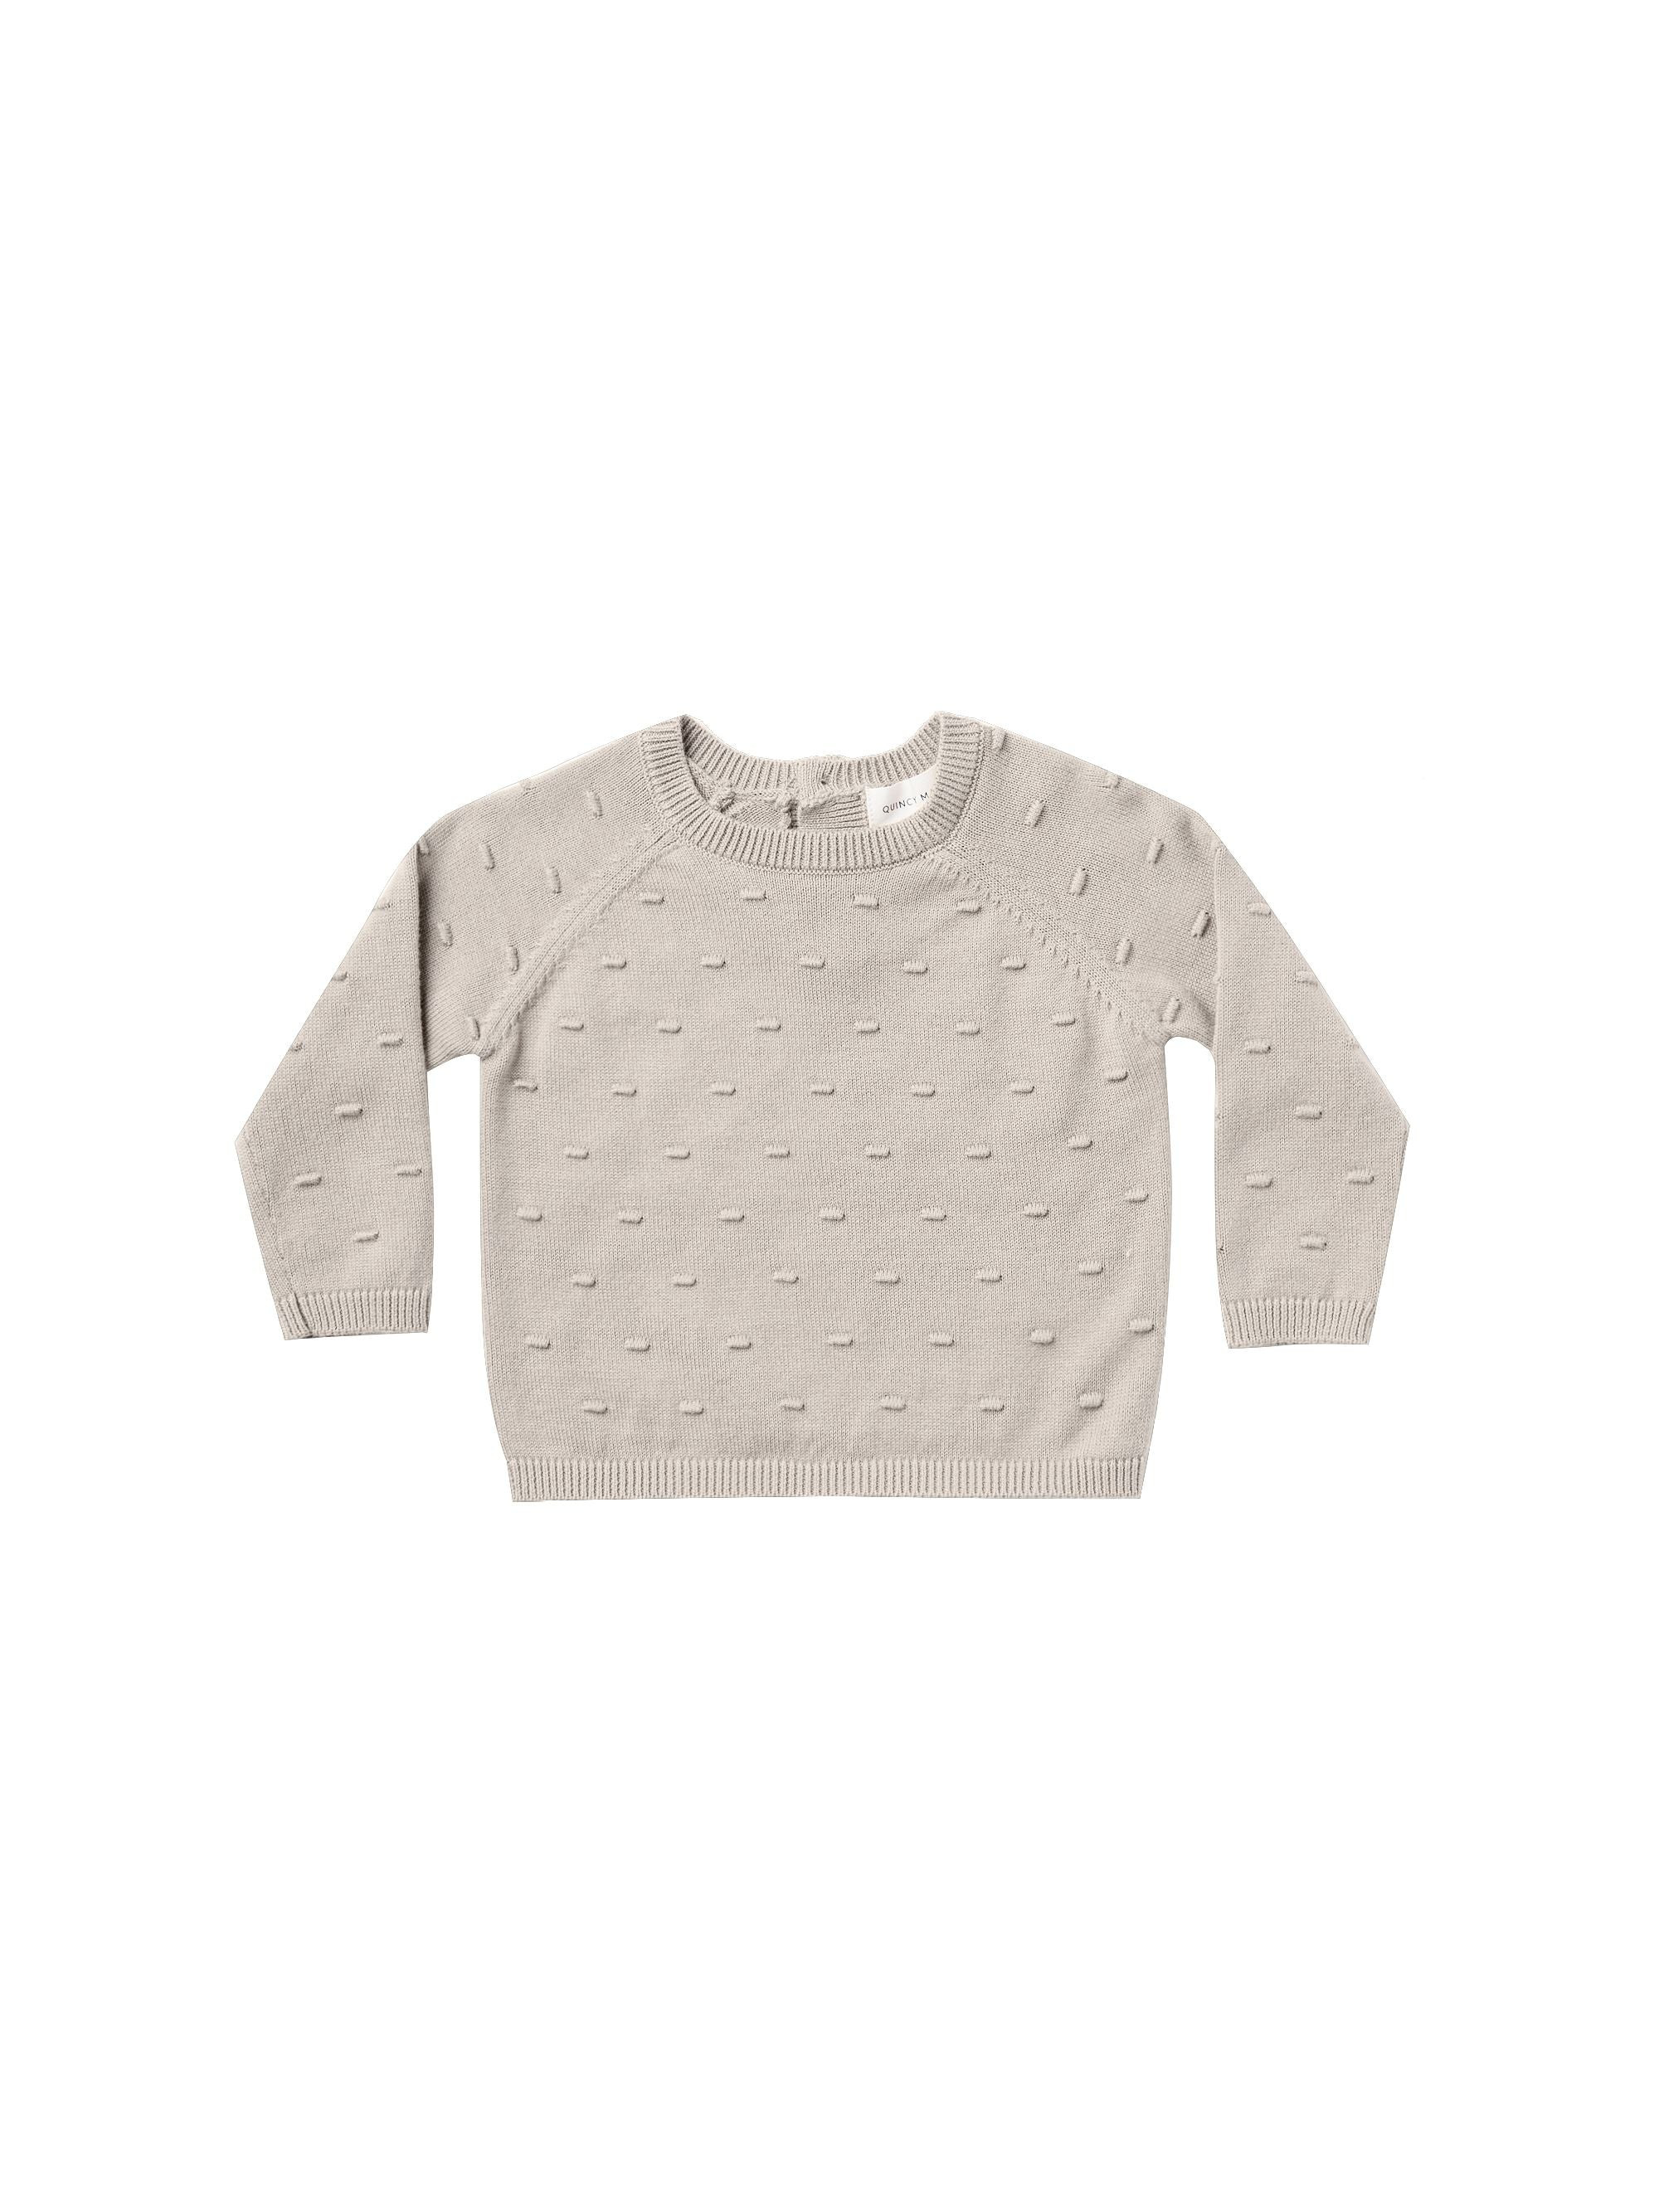 Quincy Mae Organic Bailey Knit Sweater, Fog